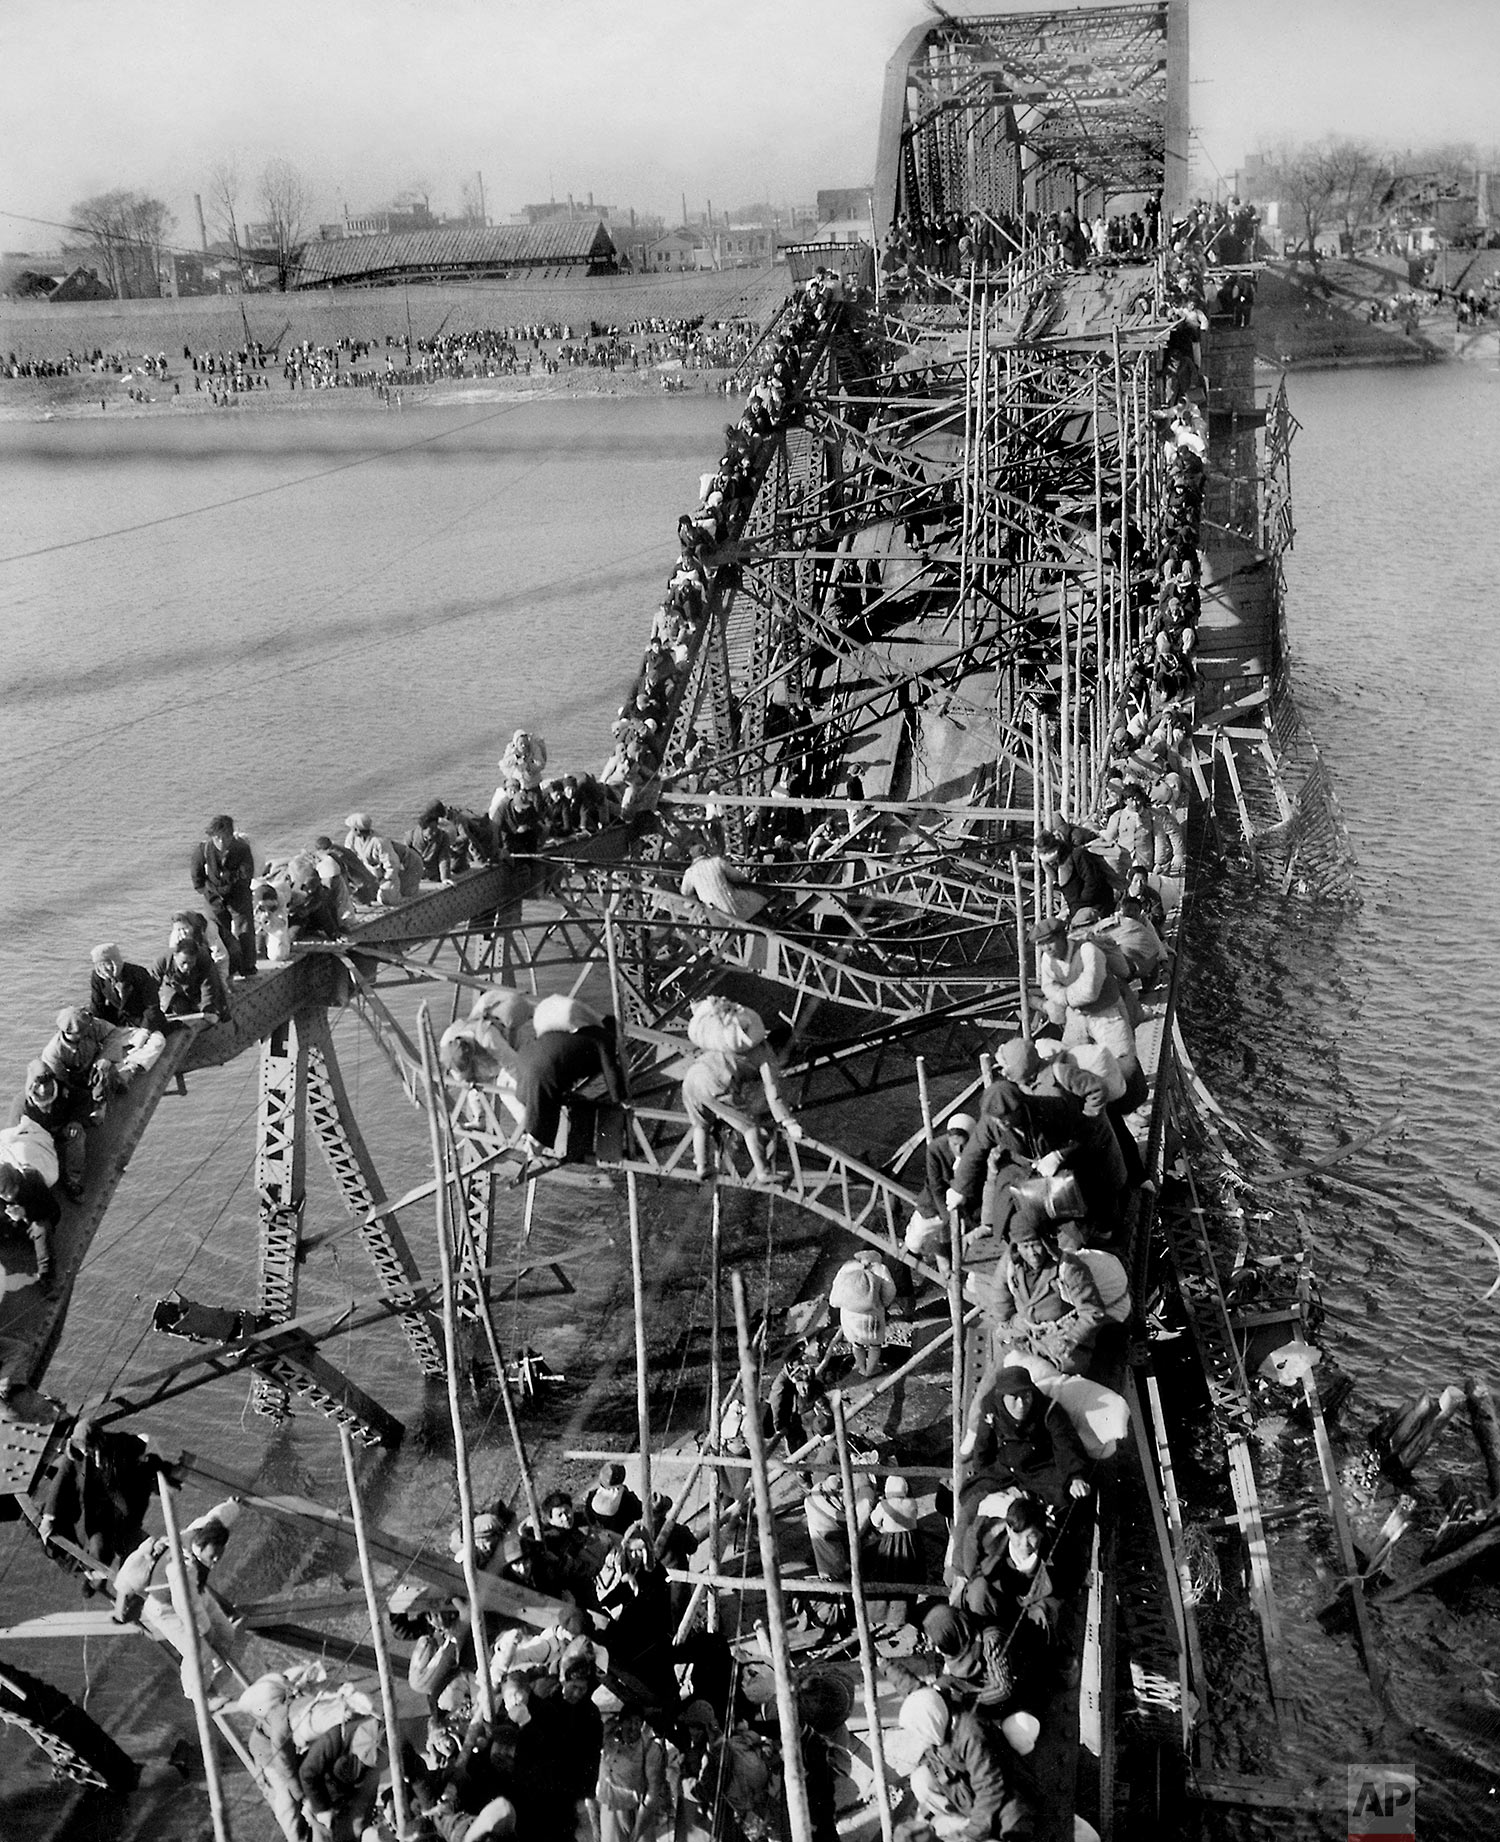 Residents from Pyongyang, North Korea, and refugees from other areas crawl perilously over shattered girders of the city's bridge on Dec. 4, 1950, as they flee south across the Taedong River to escape the advance of Chinese Communist troops. (AP Photo/Max Desfor)